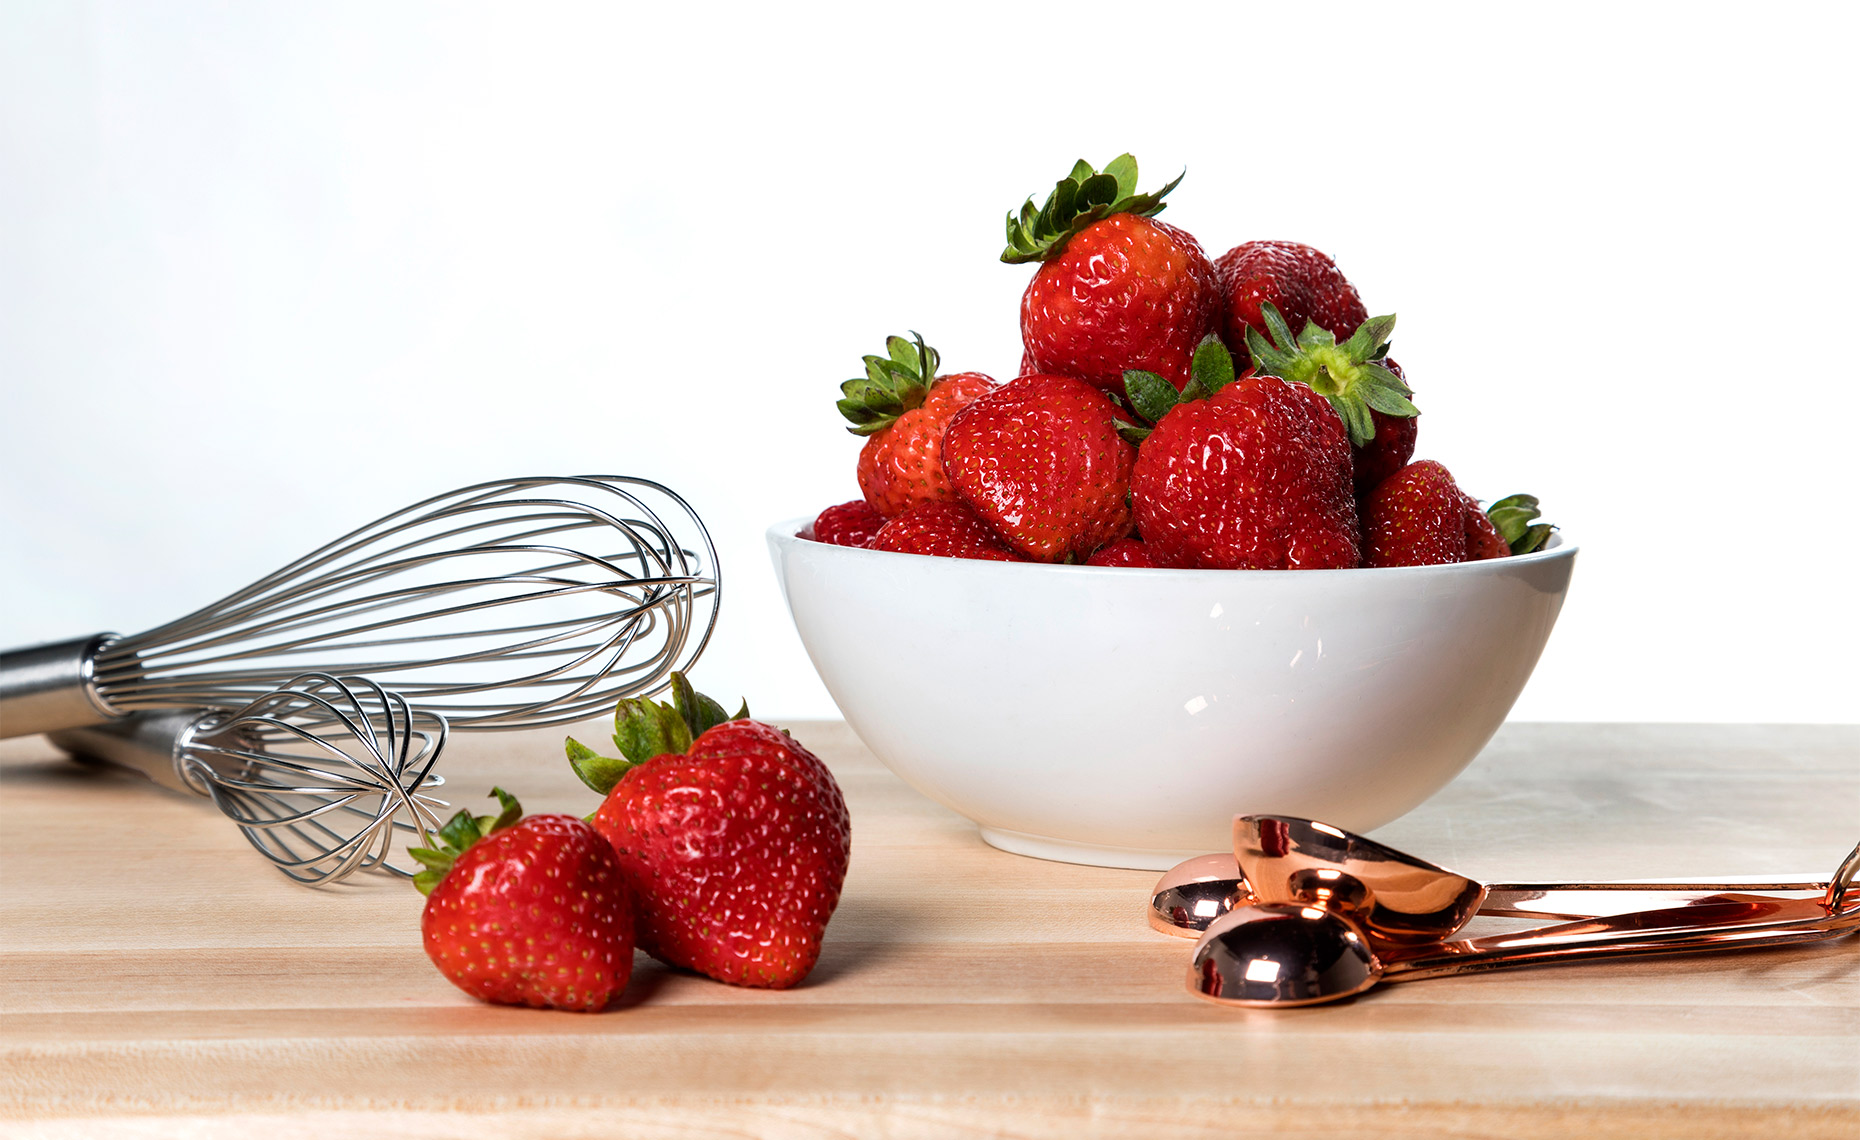 Strawberries in a ceramic white bowl.